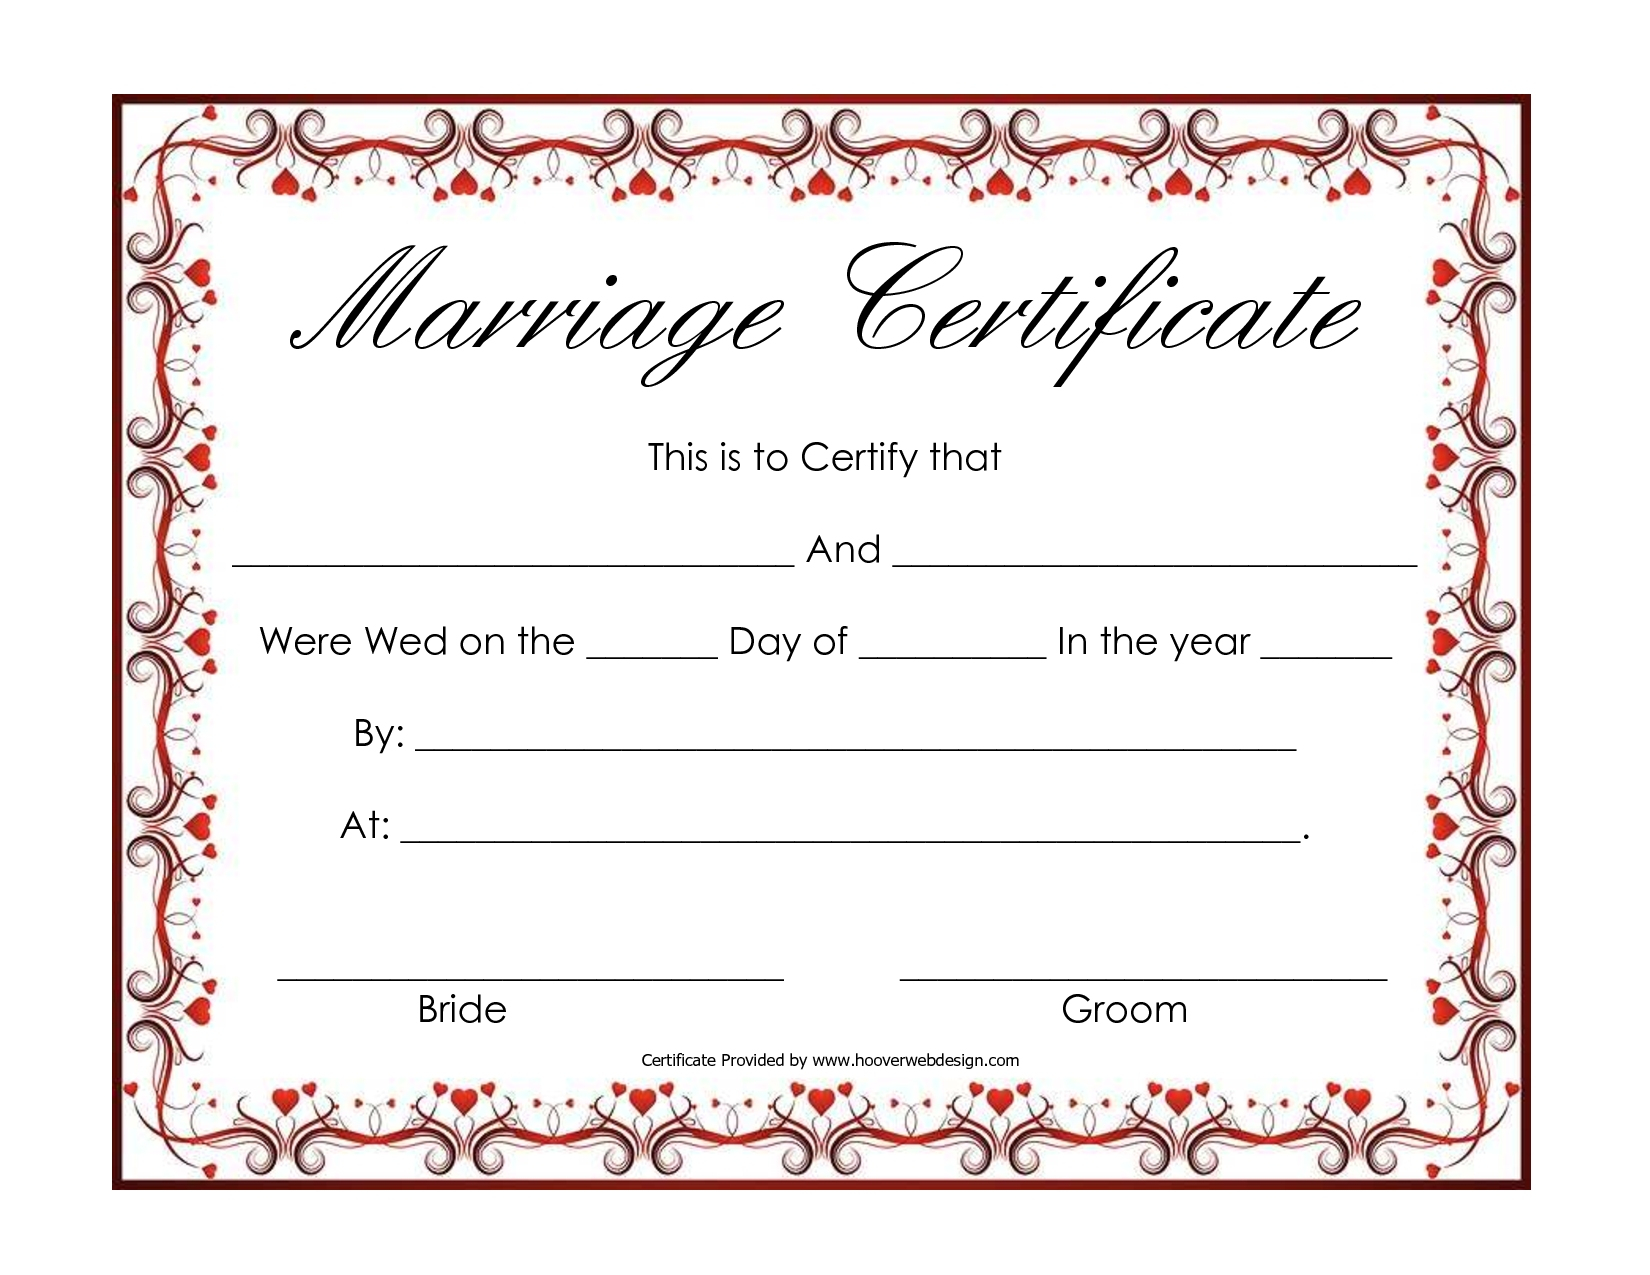 Fake Marriage Certificate Advanced Free Blank Marriage Certificates - Fake Marriage Certificate Printable Free